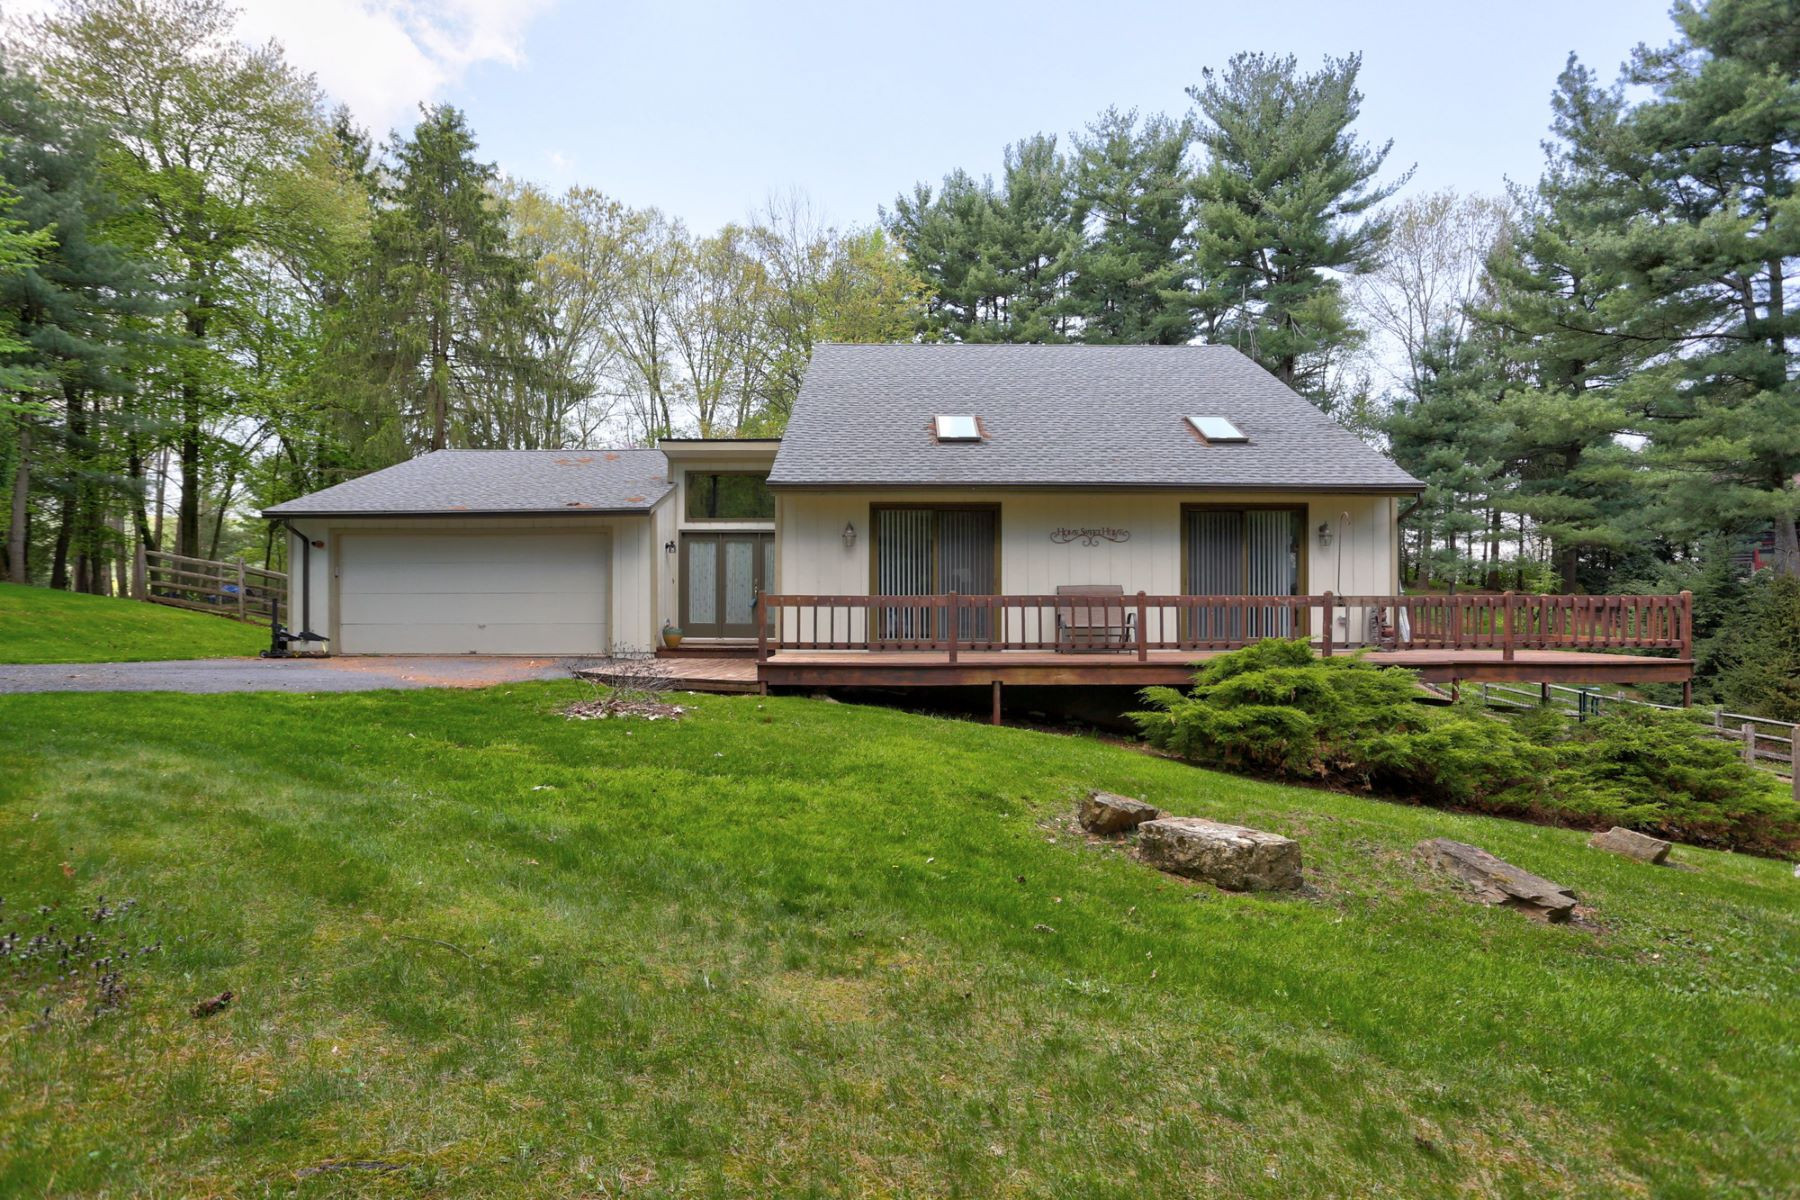 Single Family Home for Sale at 3 Century Lane 3 Century Lane Newmanstown, Pennsylvania 17073 United States